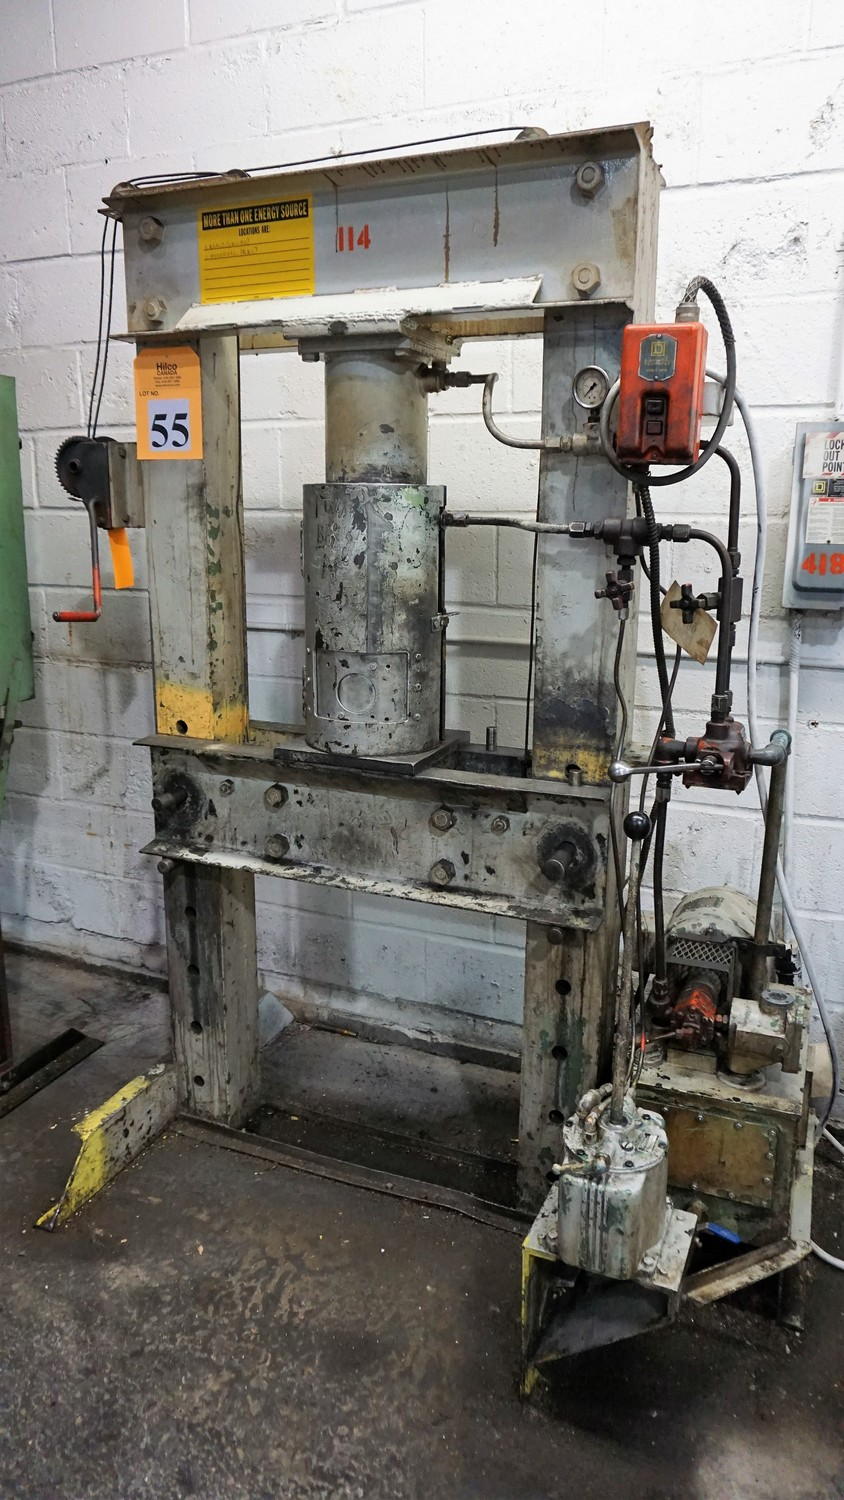 Lot 55 - 20-Ton Hydraulic Shop Press (CMI# 114)